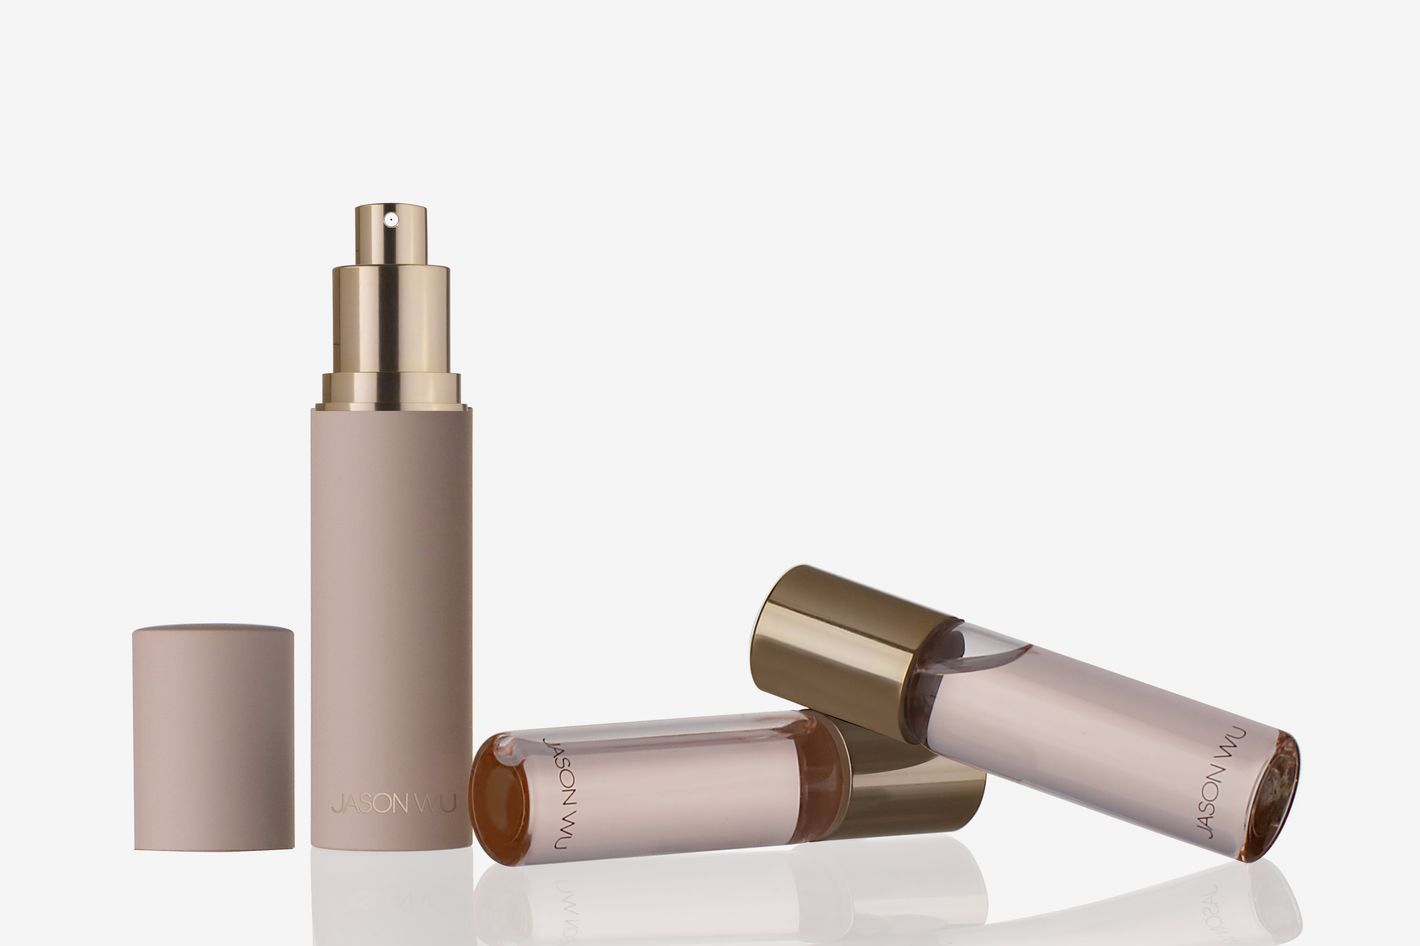 Jason Wu Purse Spray Trio